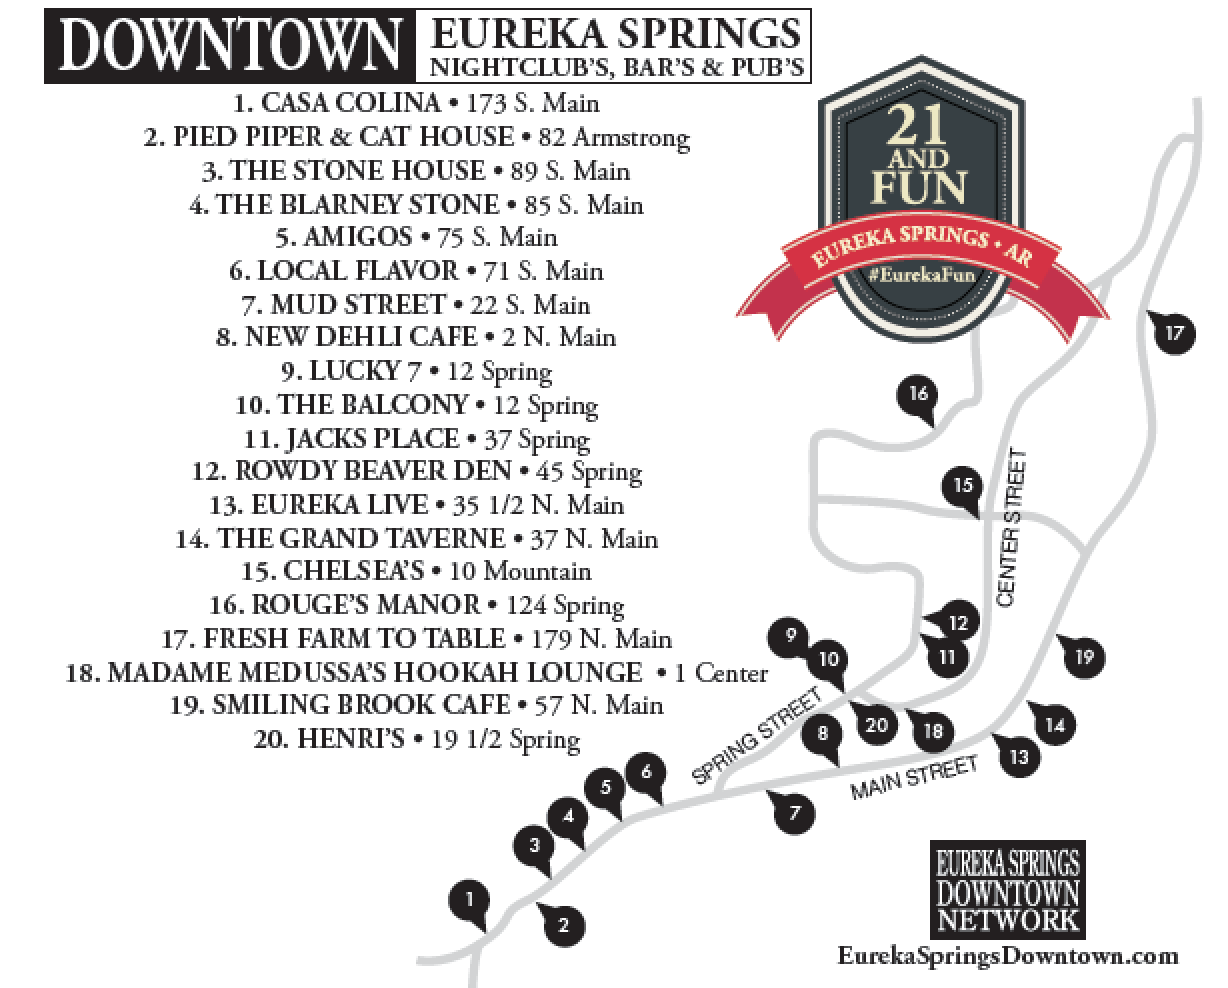 Click Here For A Map Of Eureka Springs Downtown Nightlife